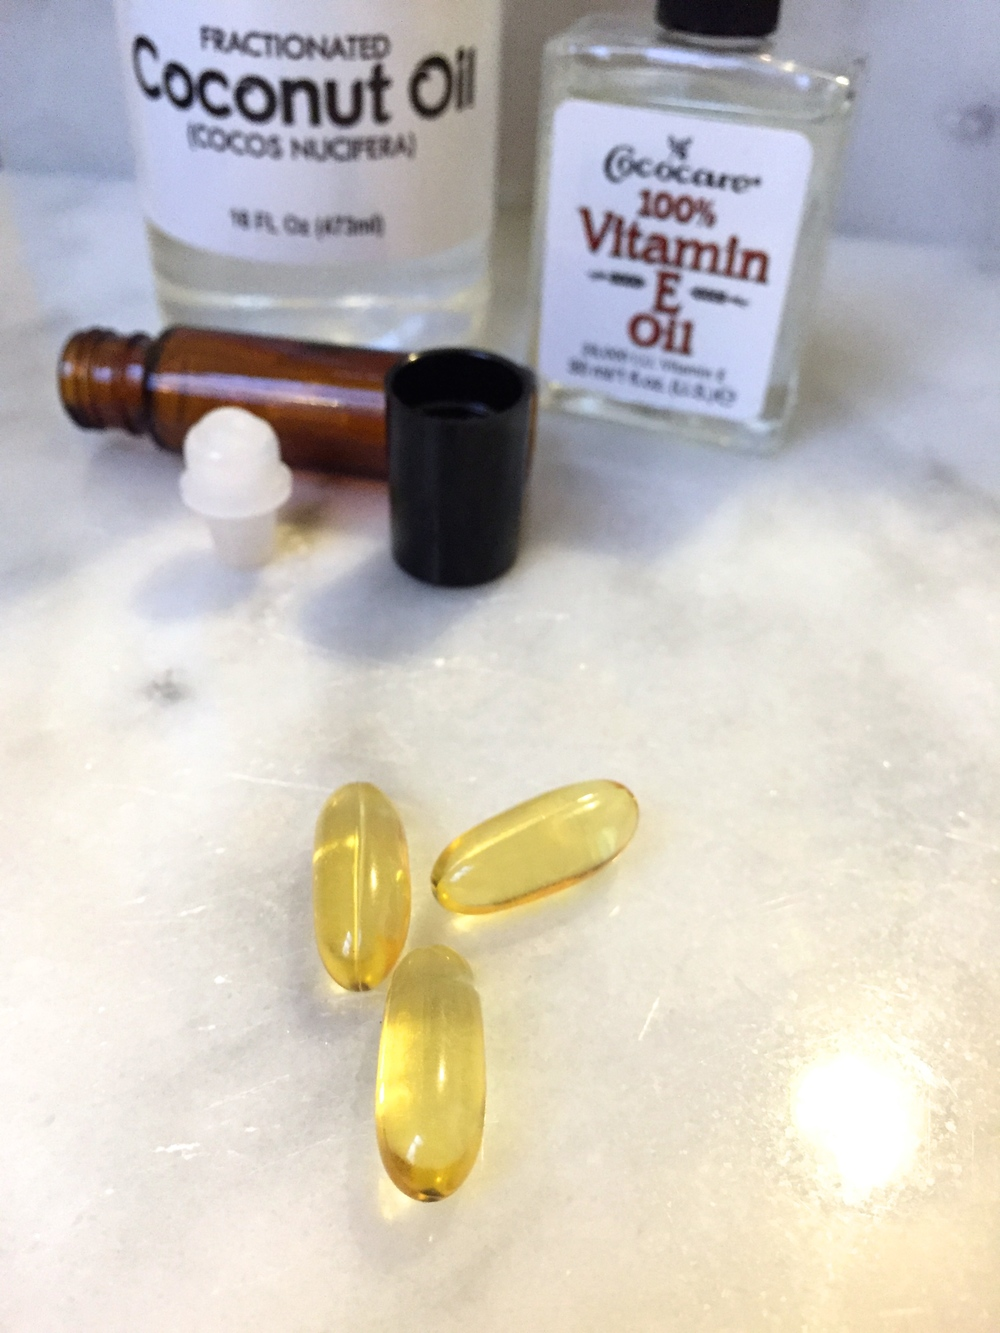 Vitamin E oil holds many skin benefits, particularly for your underye area